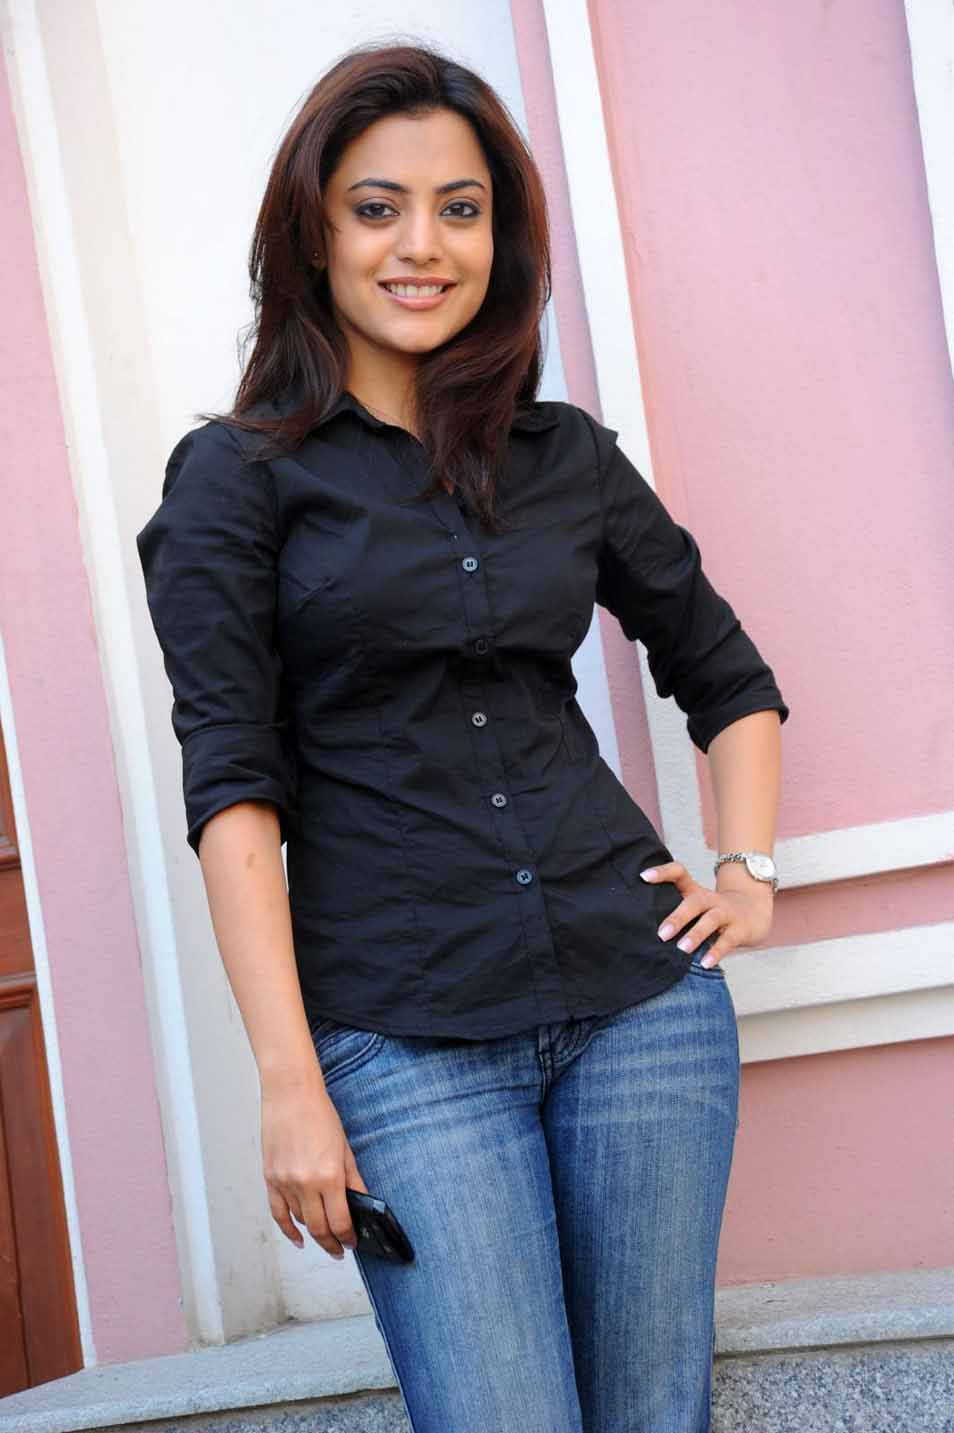 190 Nisha Agarwal Sister Of Kagal Agarwal Hot Sexy -2257